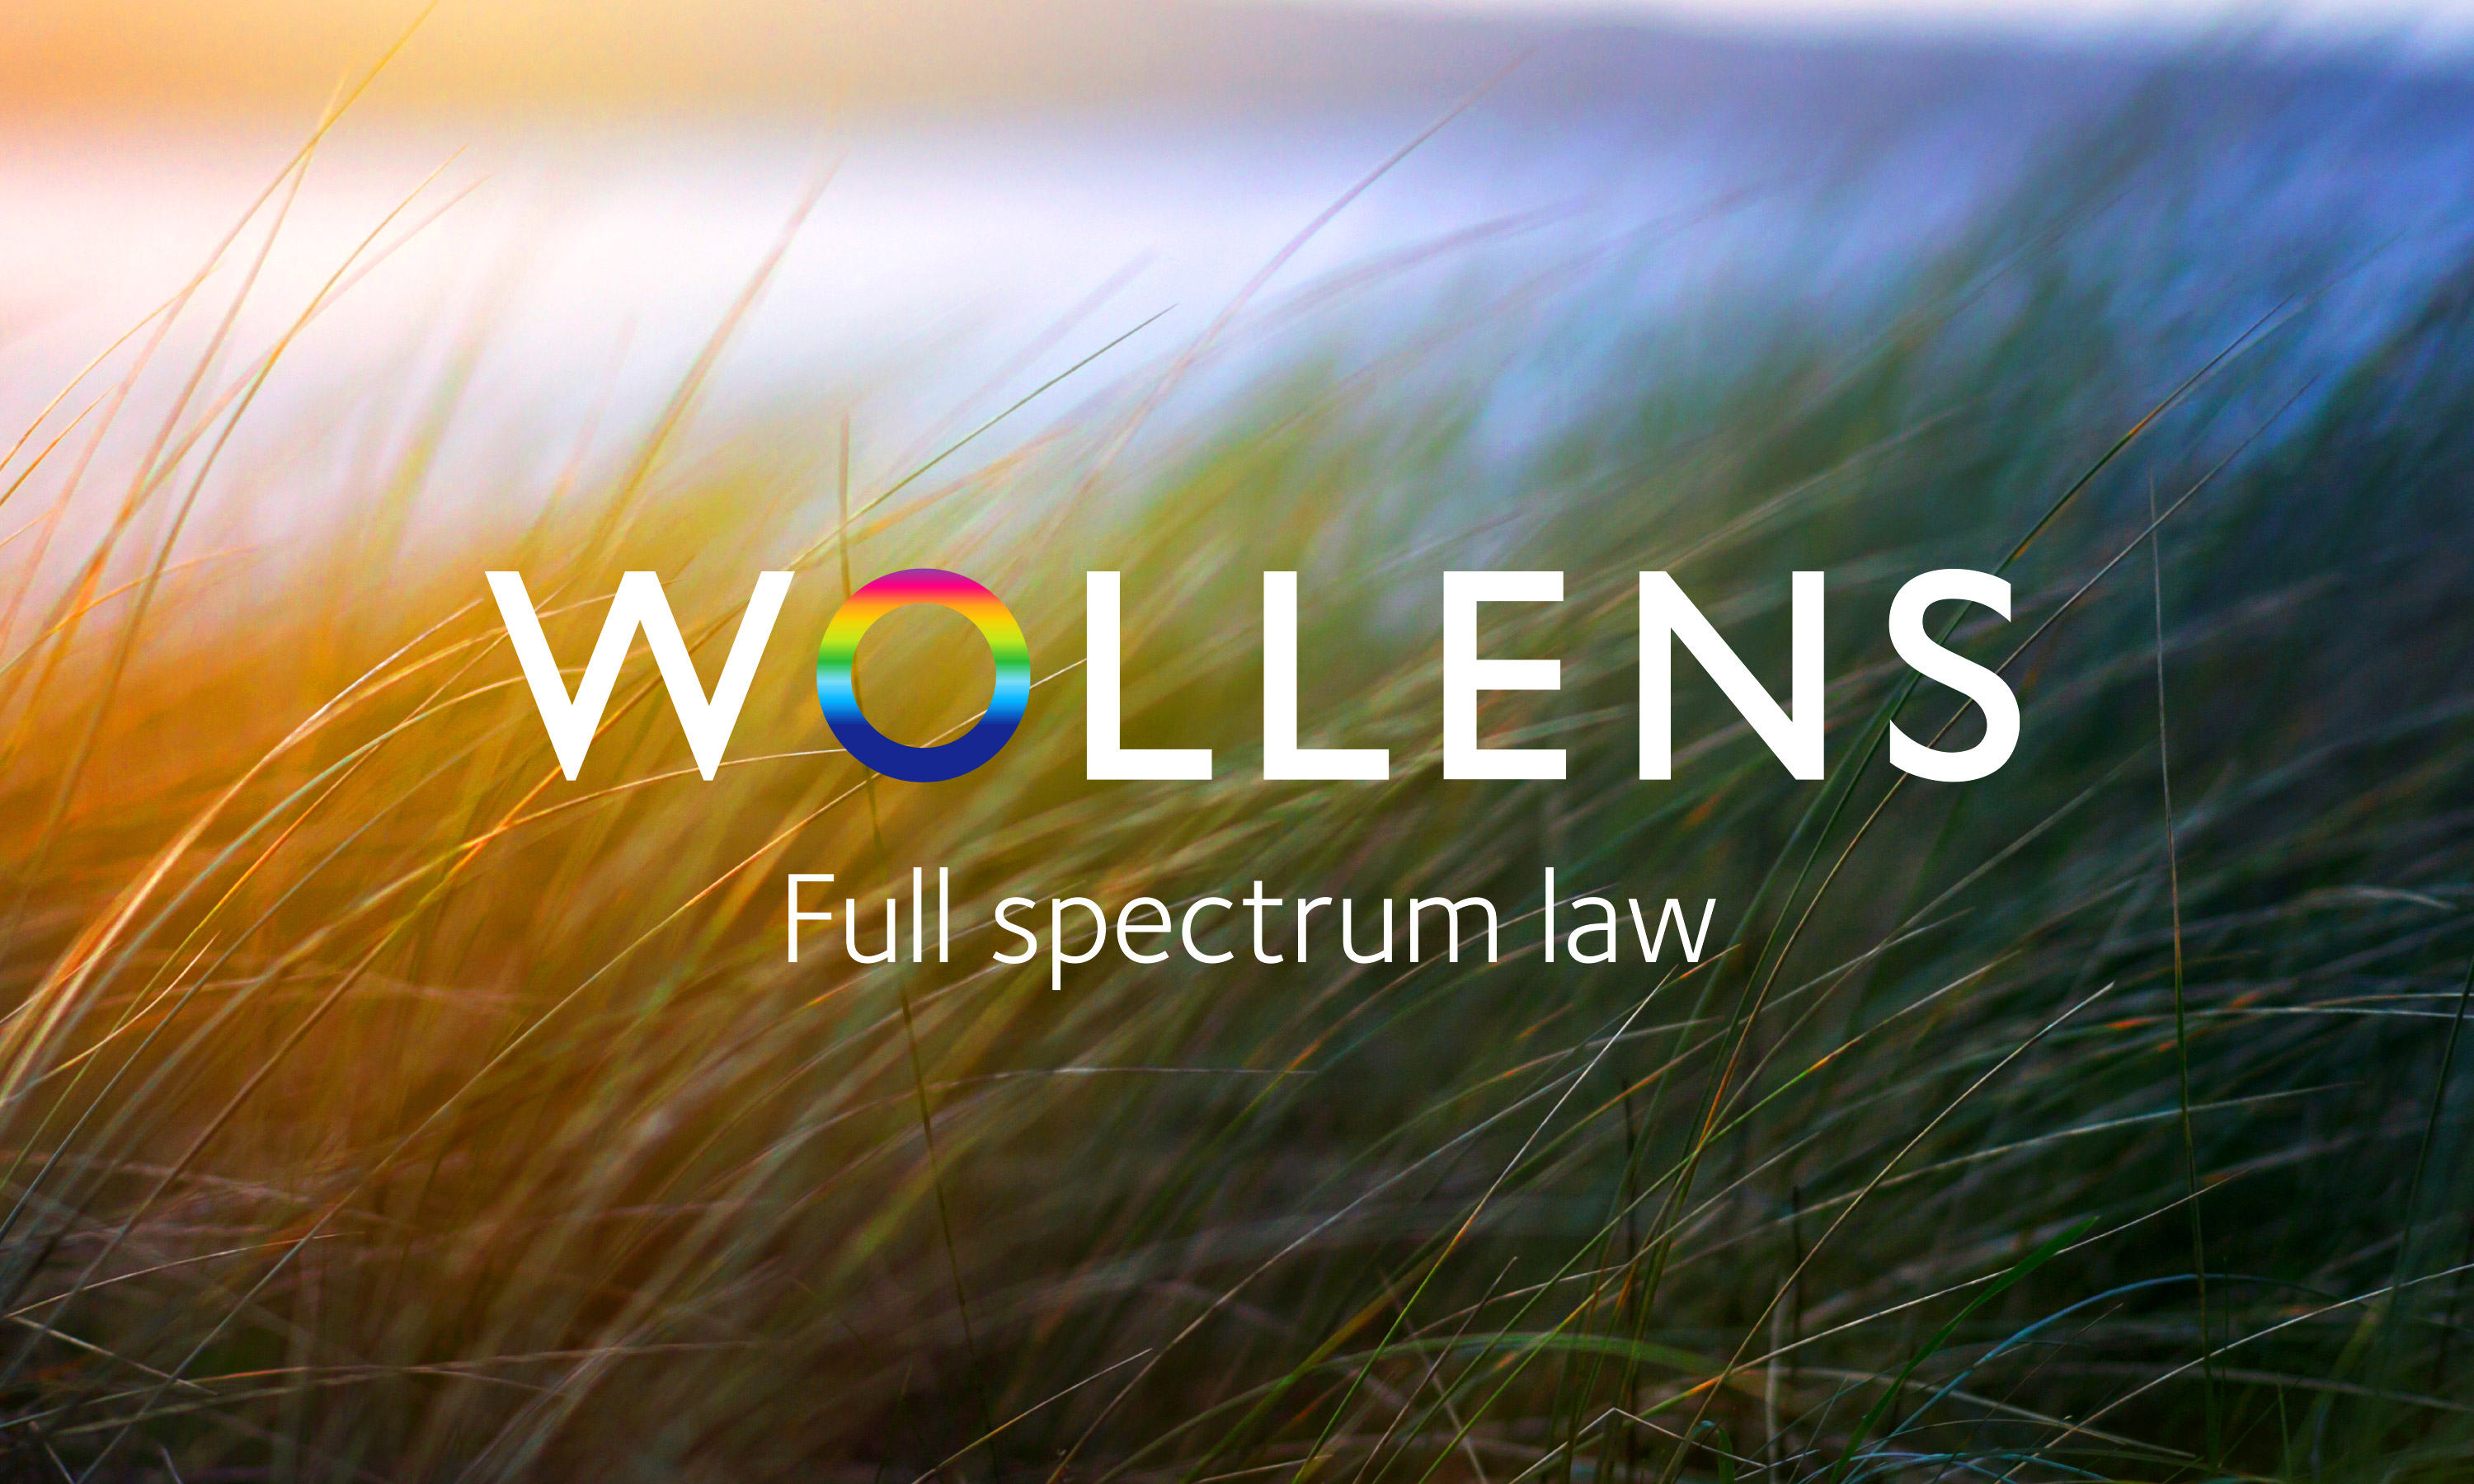 Branding by Neon Wollens Solicitors Devon, new Wollens brand mark over image of dune grasses designed by Dana Robertson